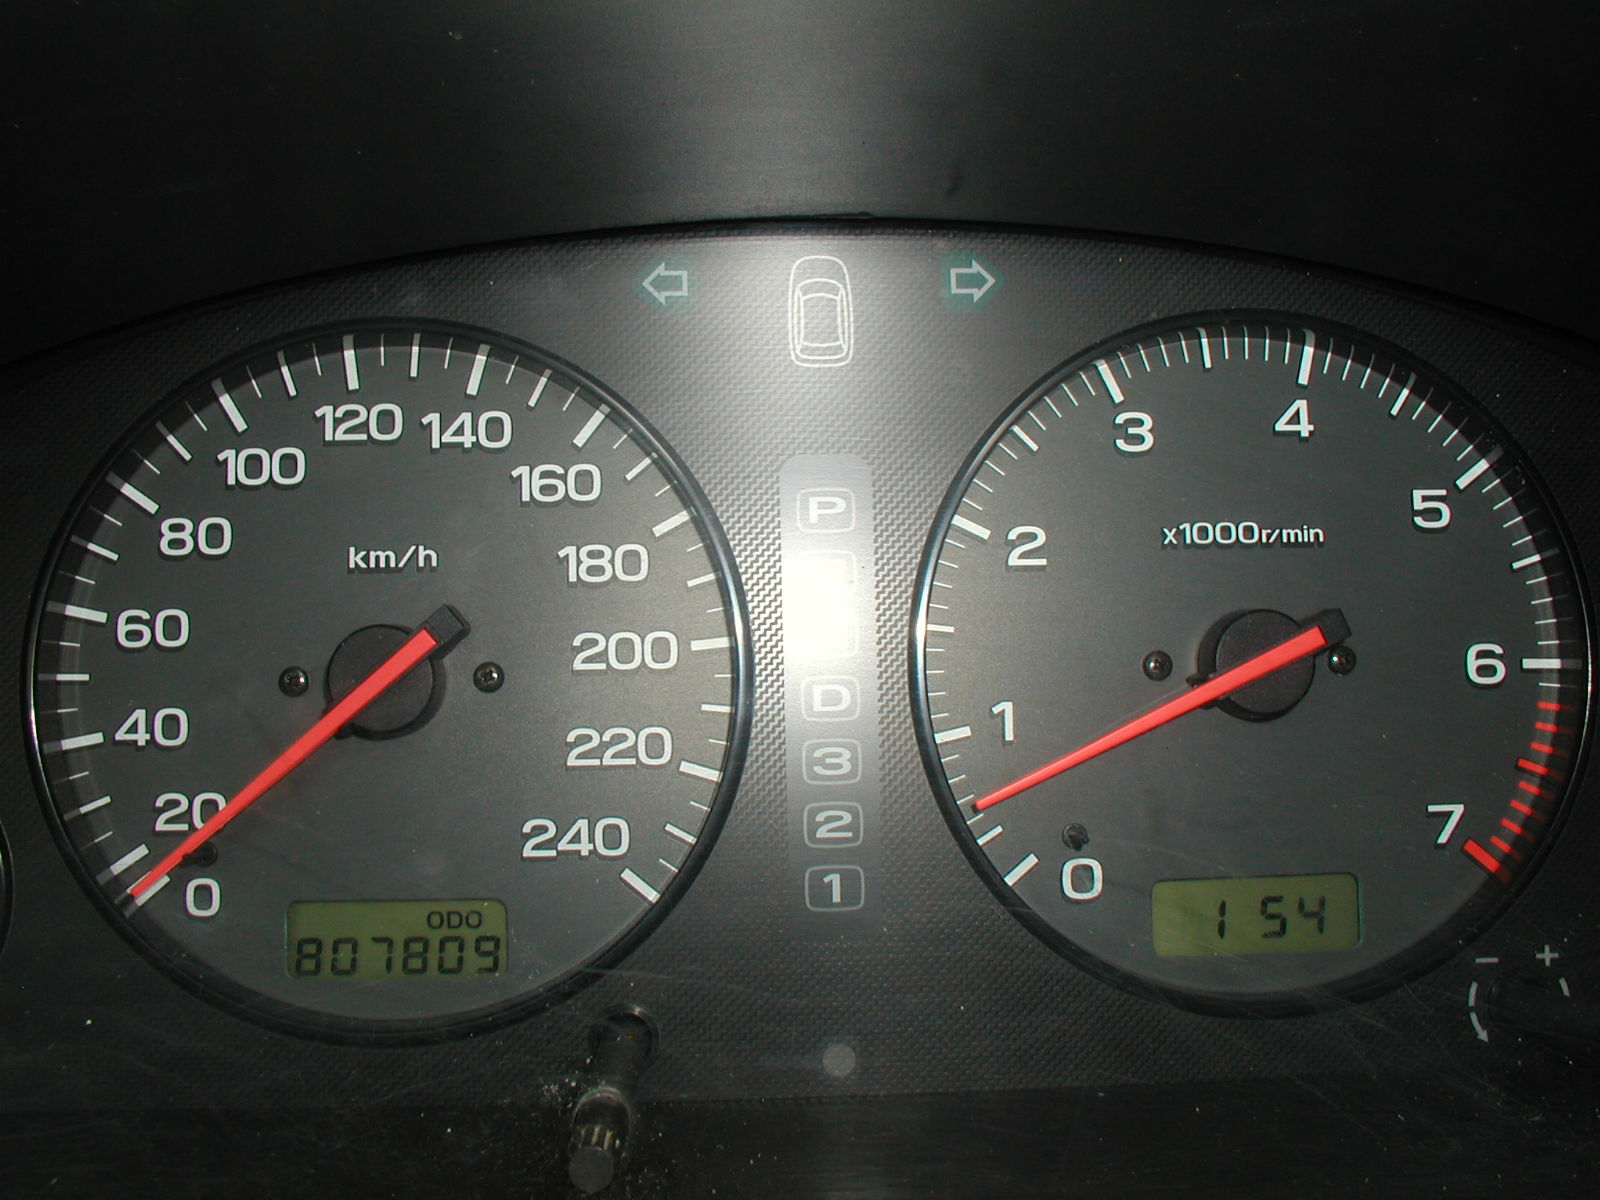 Subj subaru high mileage club date 5 17 2005 9 44 34 pm eastern daylight time from jon in ct att net to shmc001 comcast net